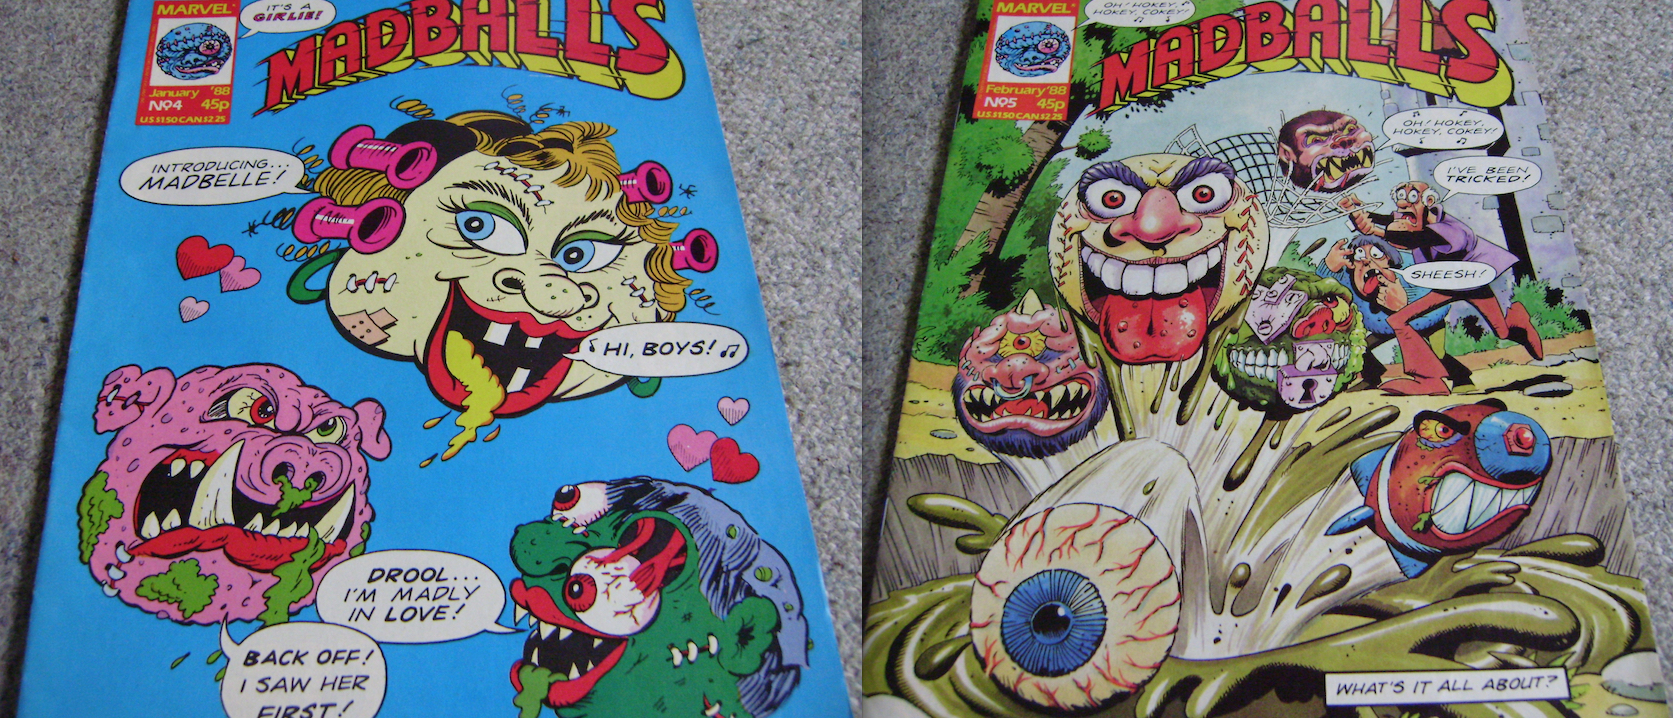 Madballs UK Comics Issues 4 & 5